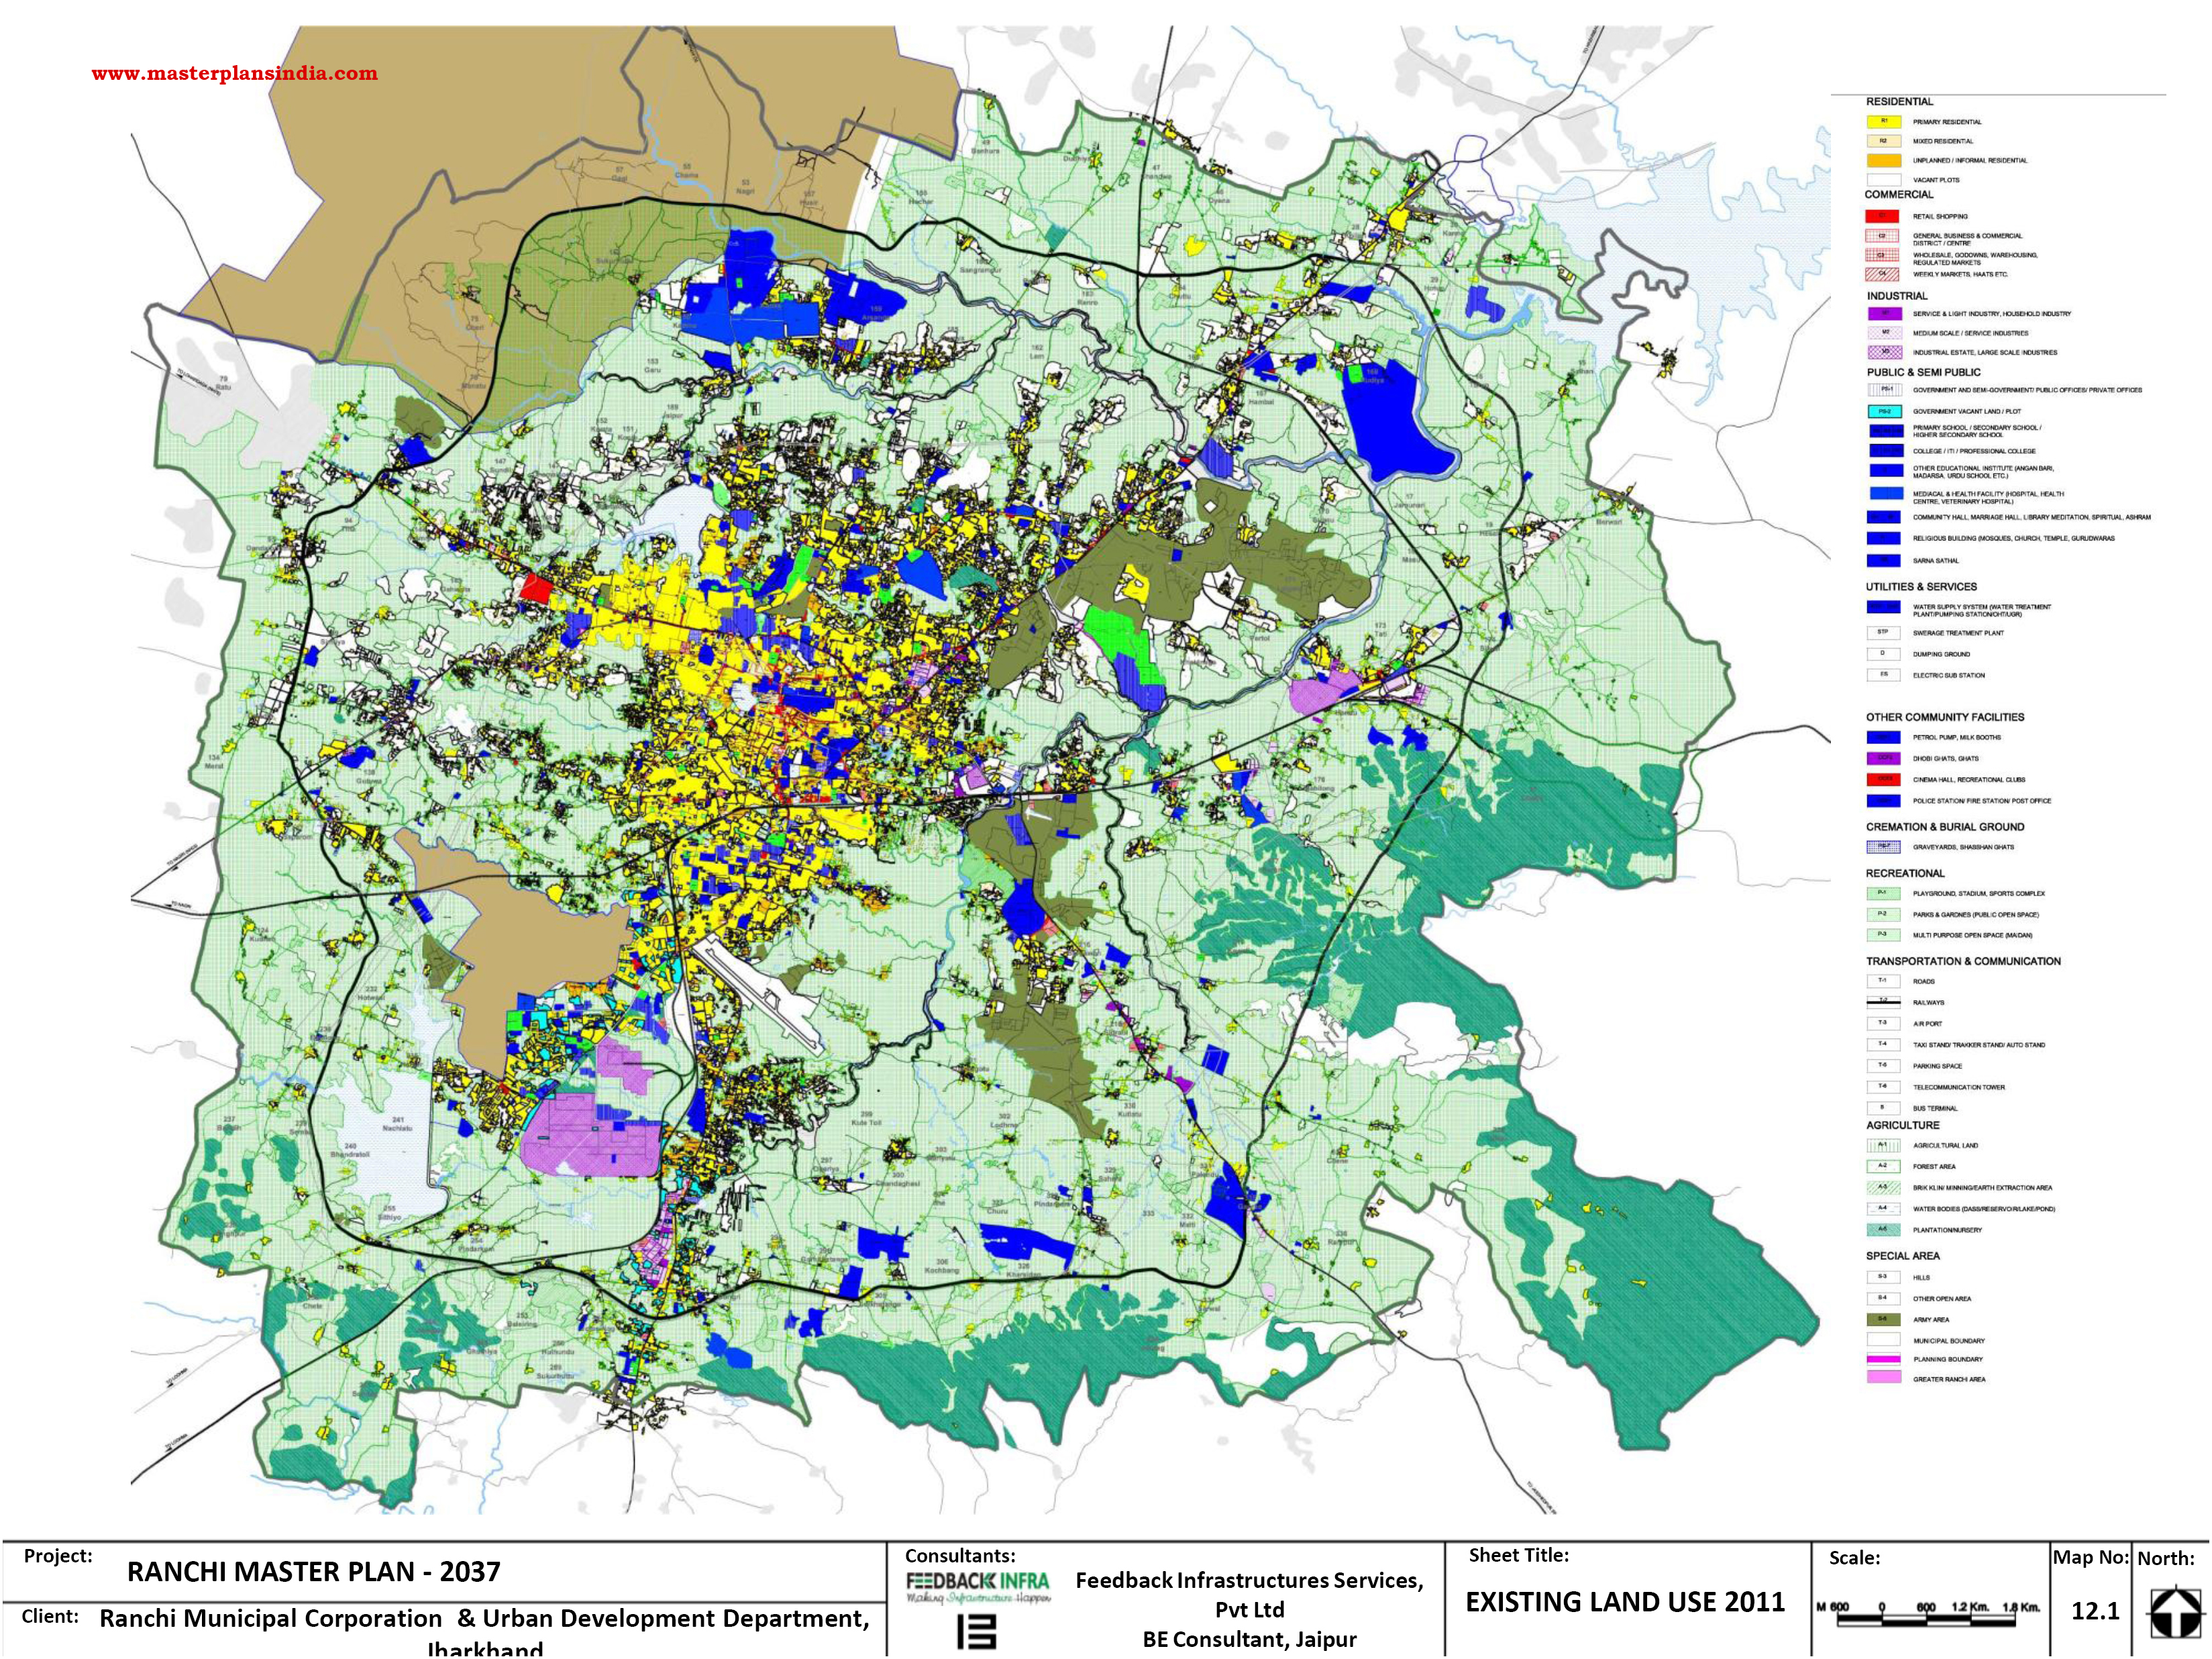 Location Of Ranchi In India Map.Ranchi Existing Land Use Map Pdf Download Master Plans India